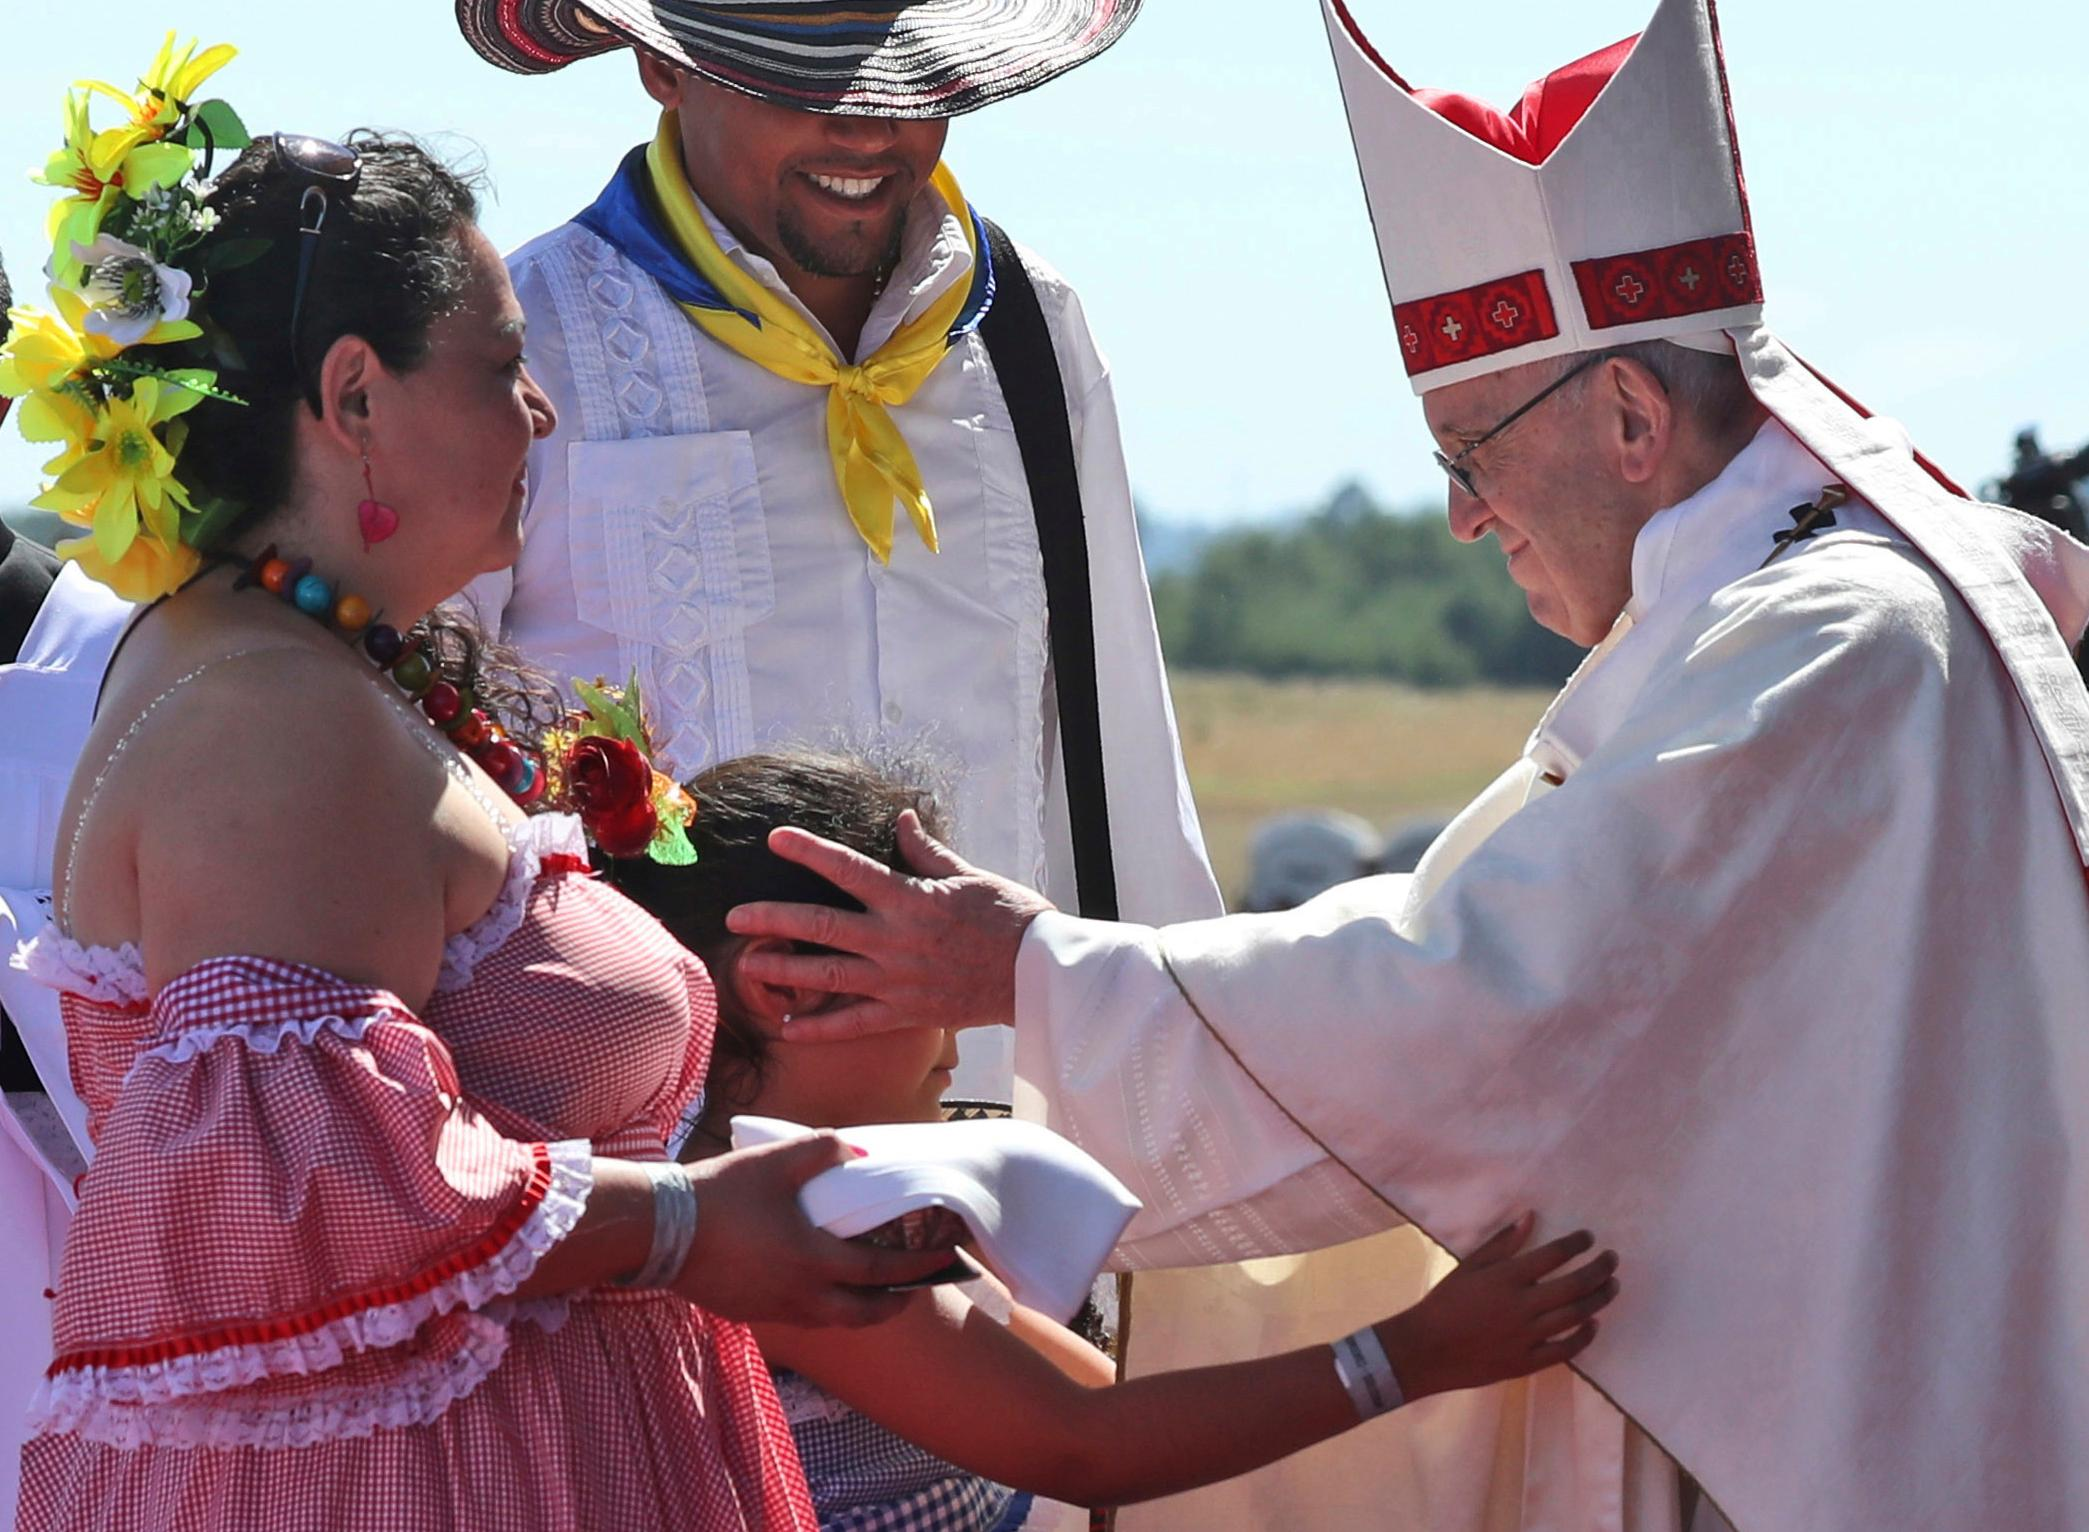 "ALTERNATIVE CROP TO ALT114 -  A child reaches out to embrace Pope Francis in the offertory of a Mass at the Maquehue Air Base, in Temuco, Chile, Wednesday, Jan. 17, 2018. Francis is paying homage to Chileans who were tortured or killed at the air base. Francis said the area is ""the site of grave violations of human rights,"" and that the Mass was being offered for all those who have suffered or died. (AP Photo/Alessandra Tarantino)"